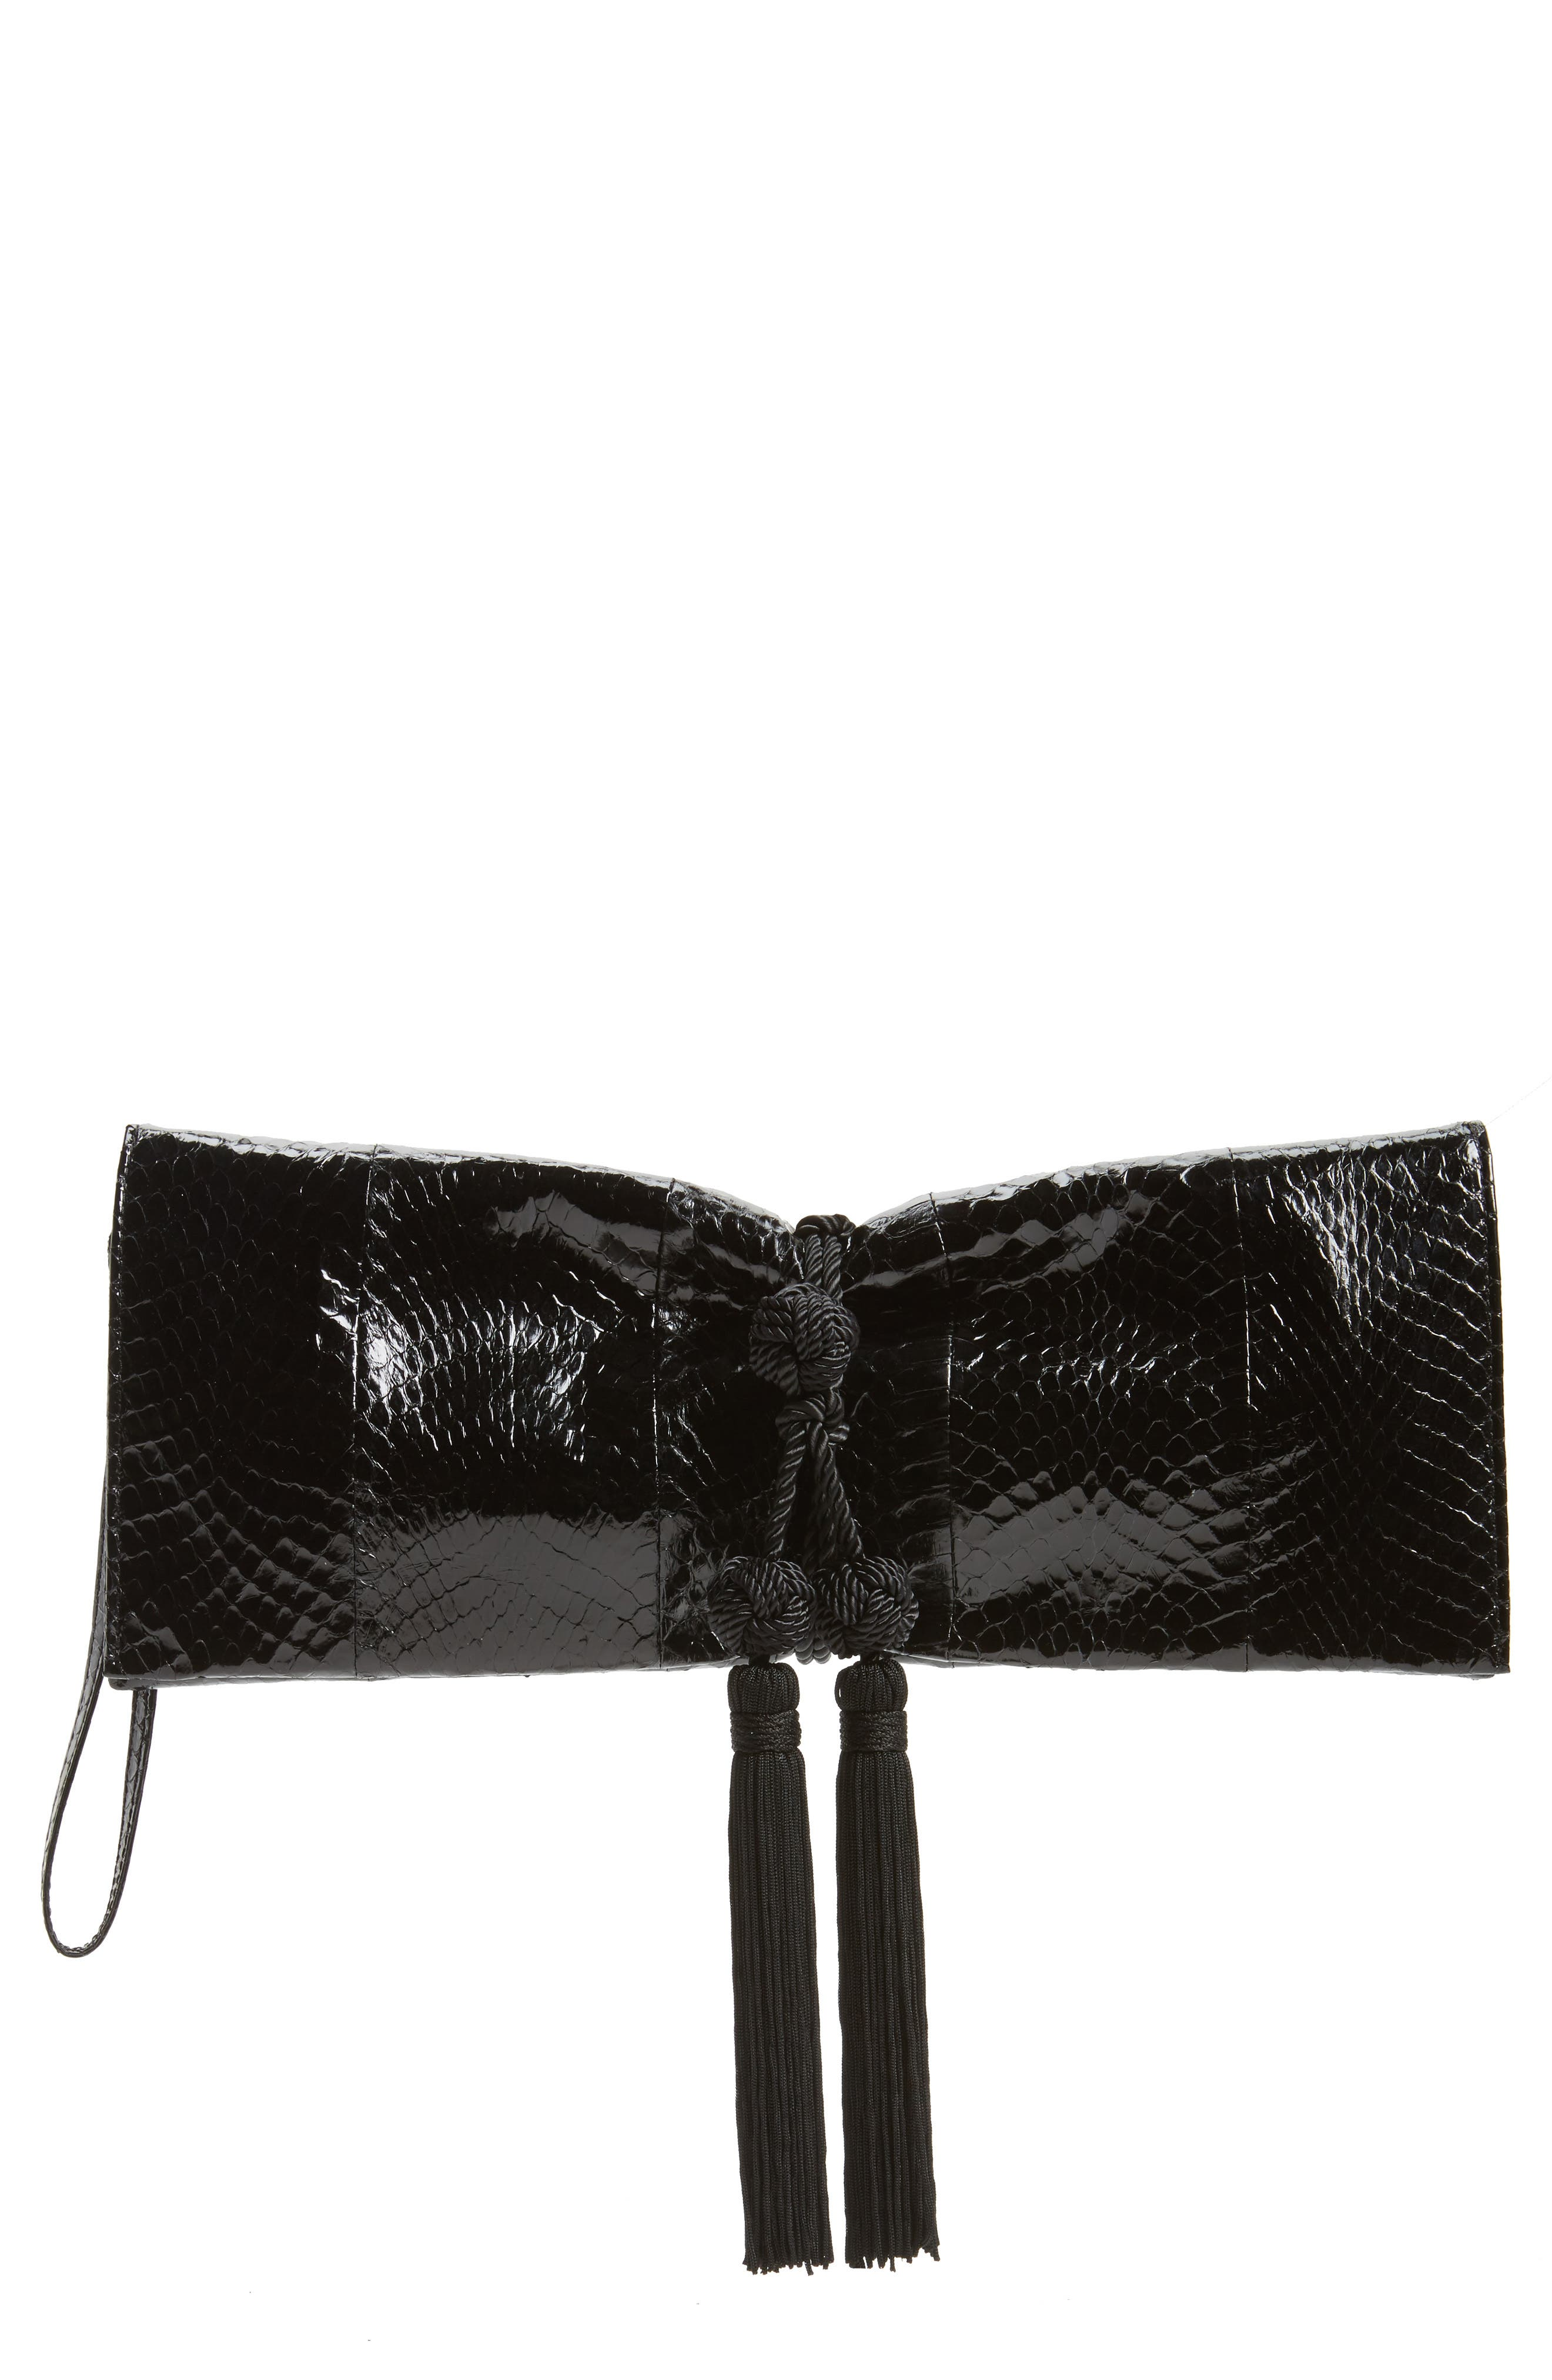 Badgley Mischka Circa Snake-Embossed Leather Clutch